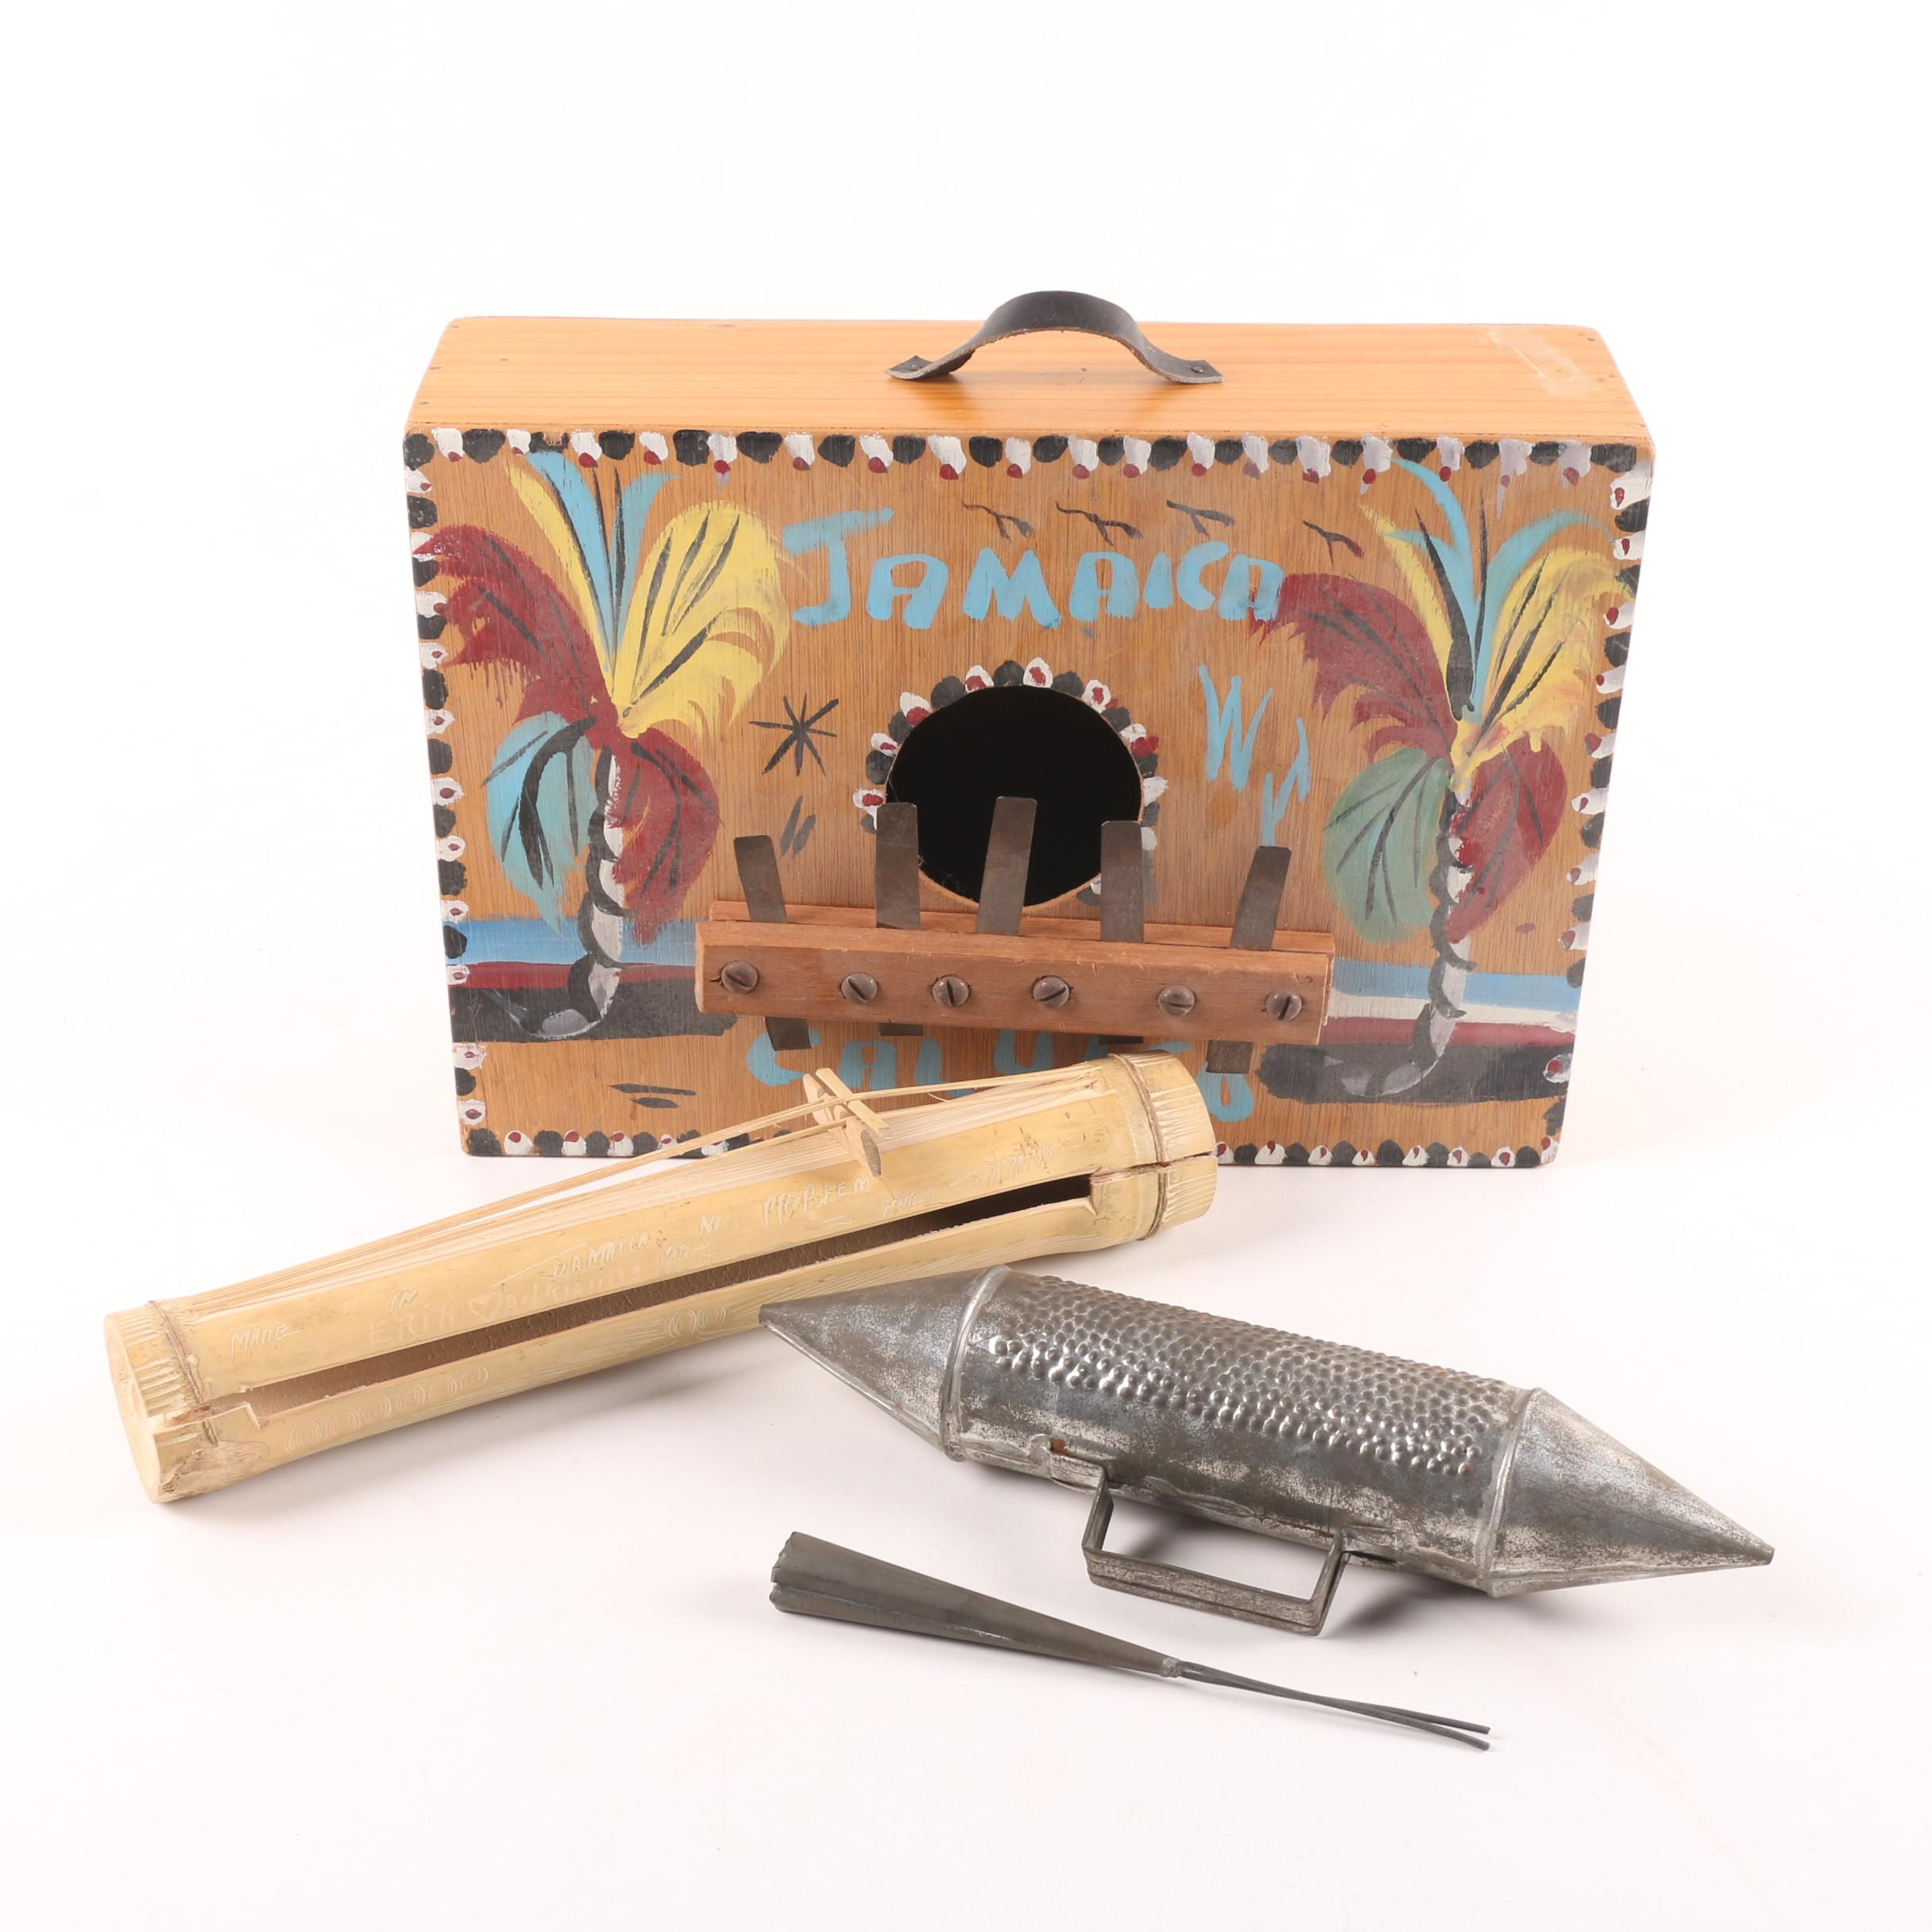 Hand Painted Jamaican Kalimba, Metal Guiro and Bamboo Stringed Instrument